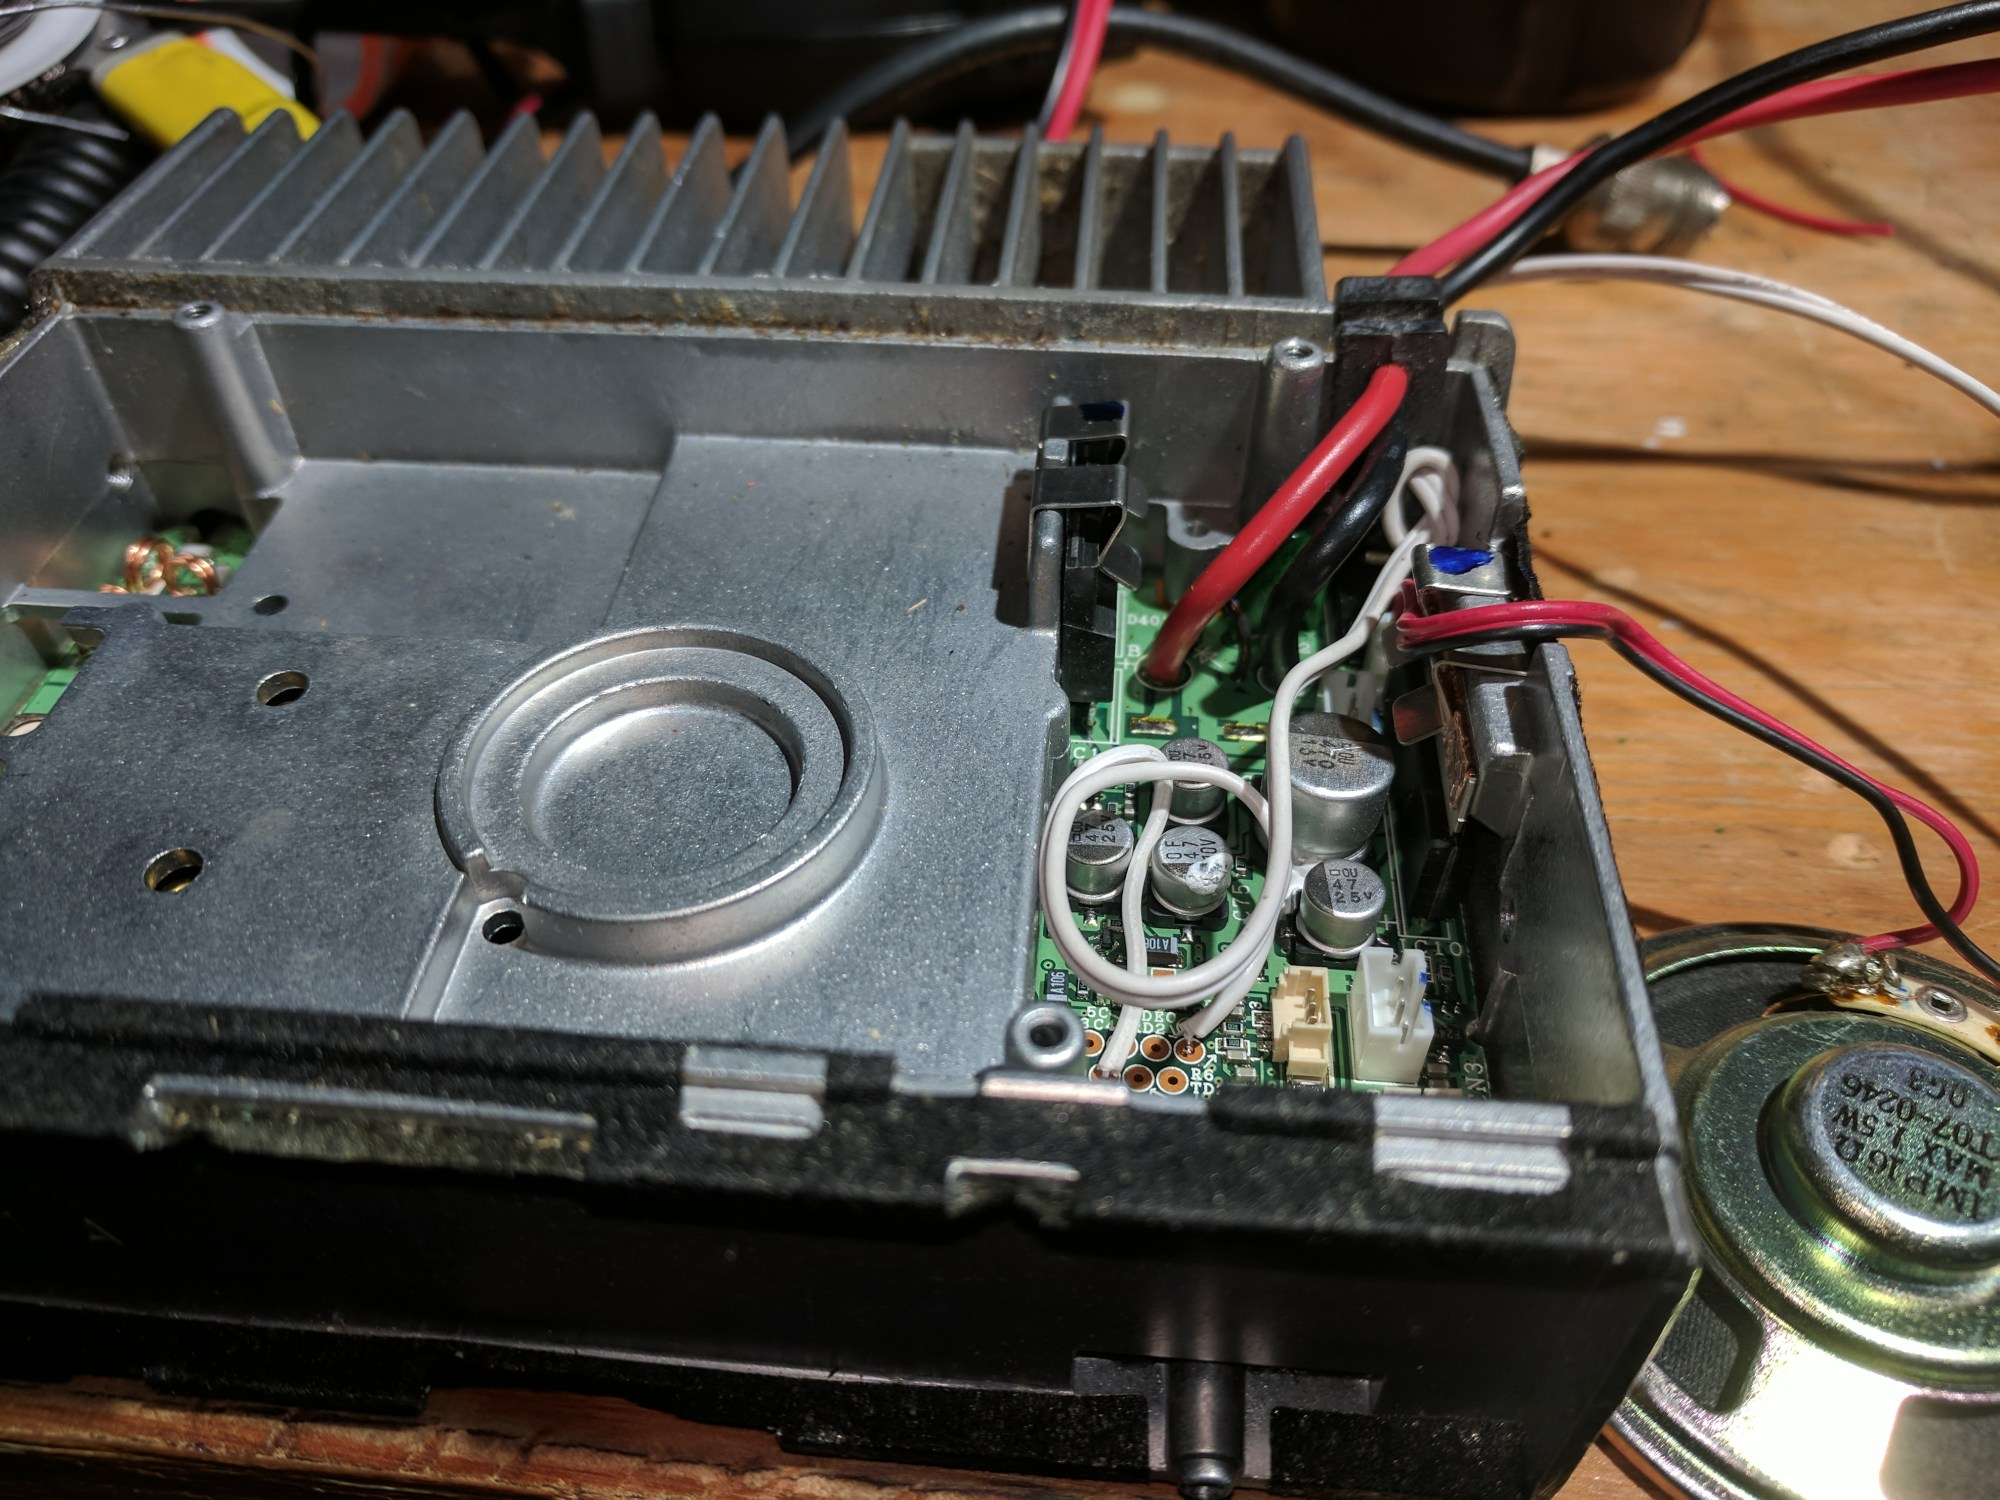 hight resolution of label your wires or use different colored wires or whatever you need to do to tell them apart reassemble the radio and we ll move on to programming